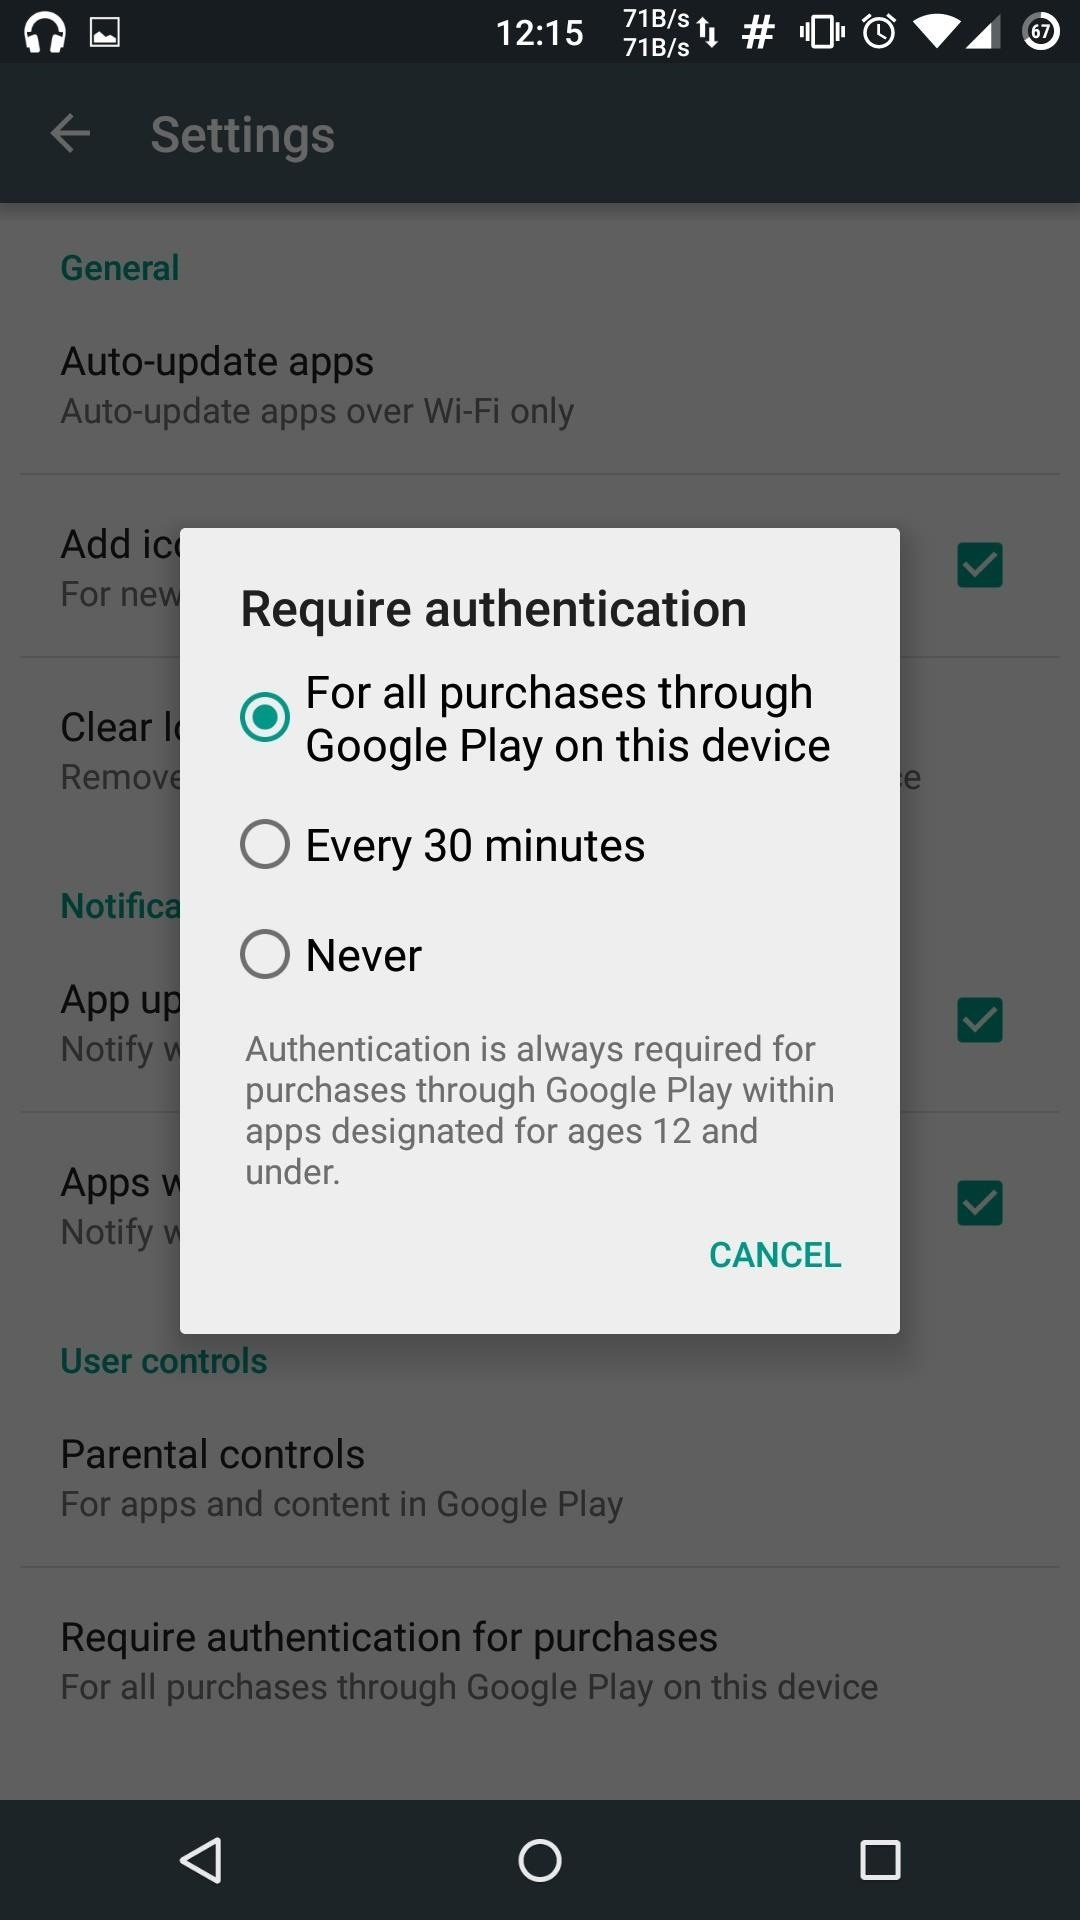 Android Parental Controls 101: Settings to Tweak on Your Kid's Phone